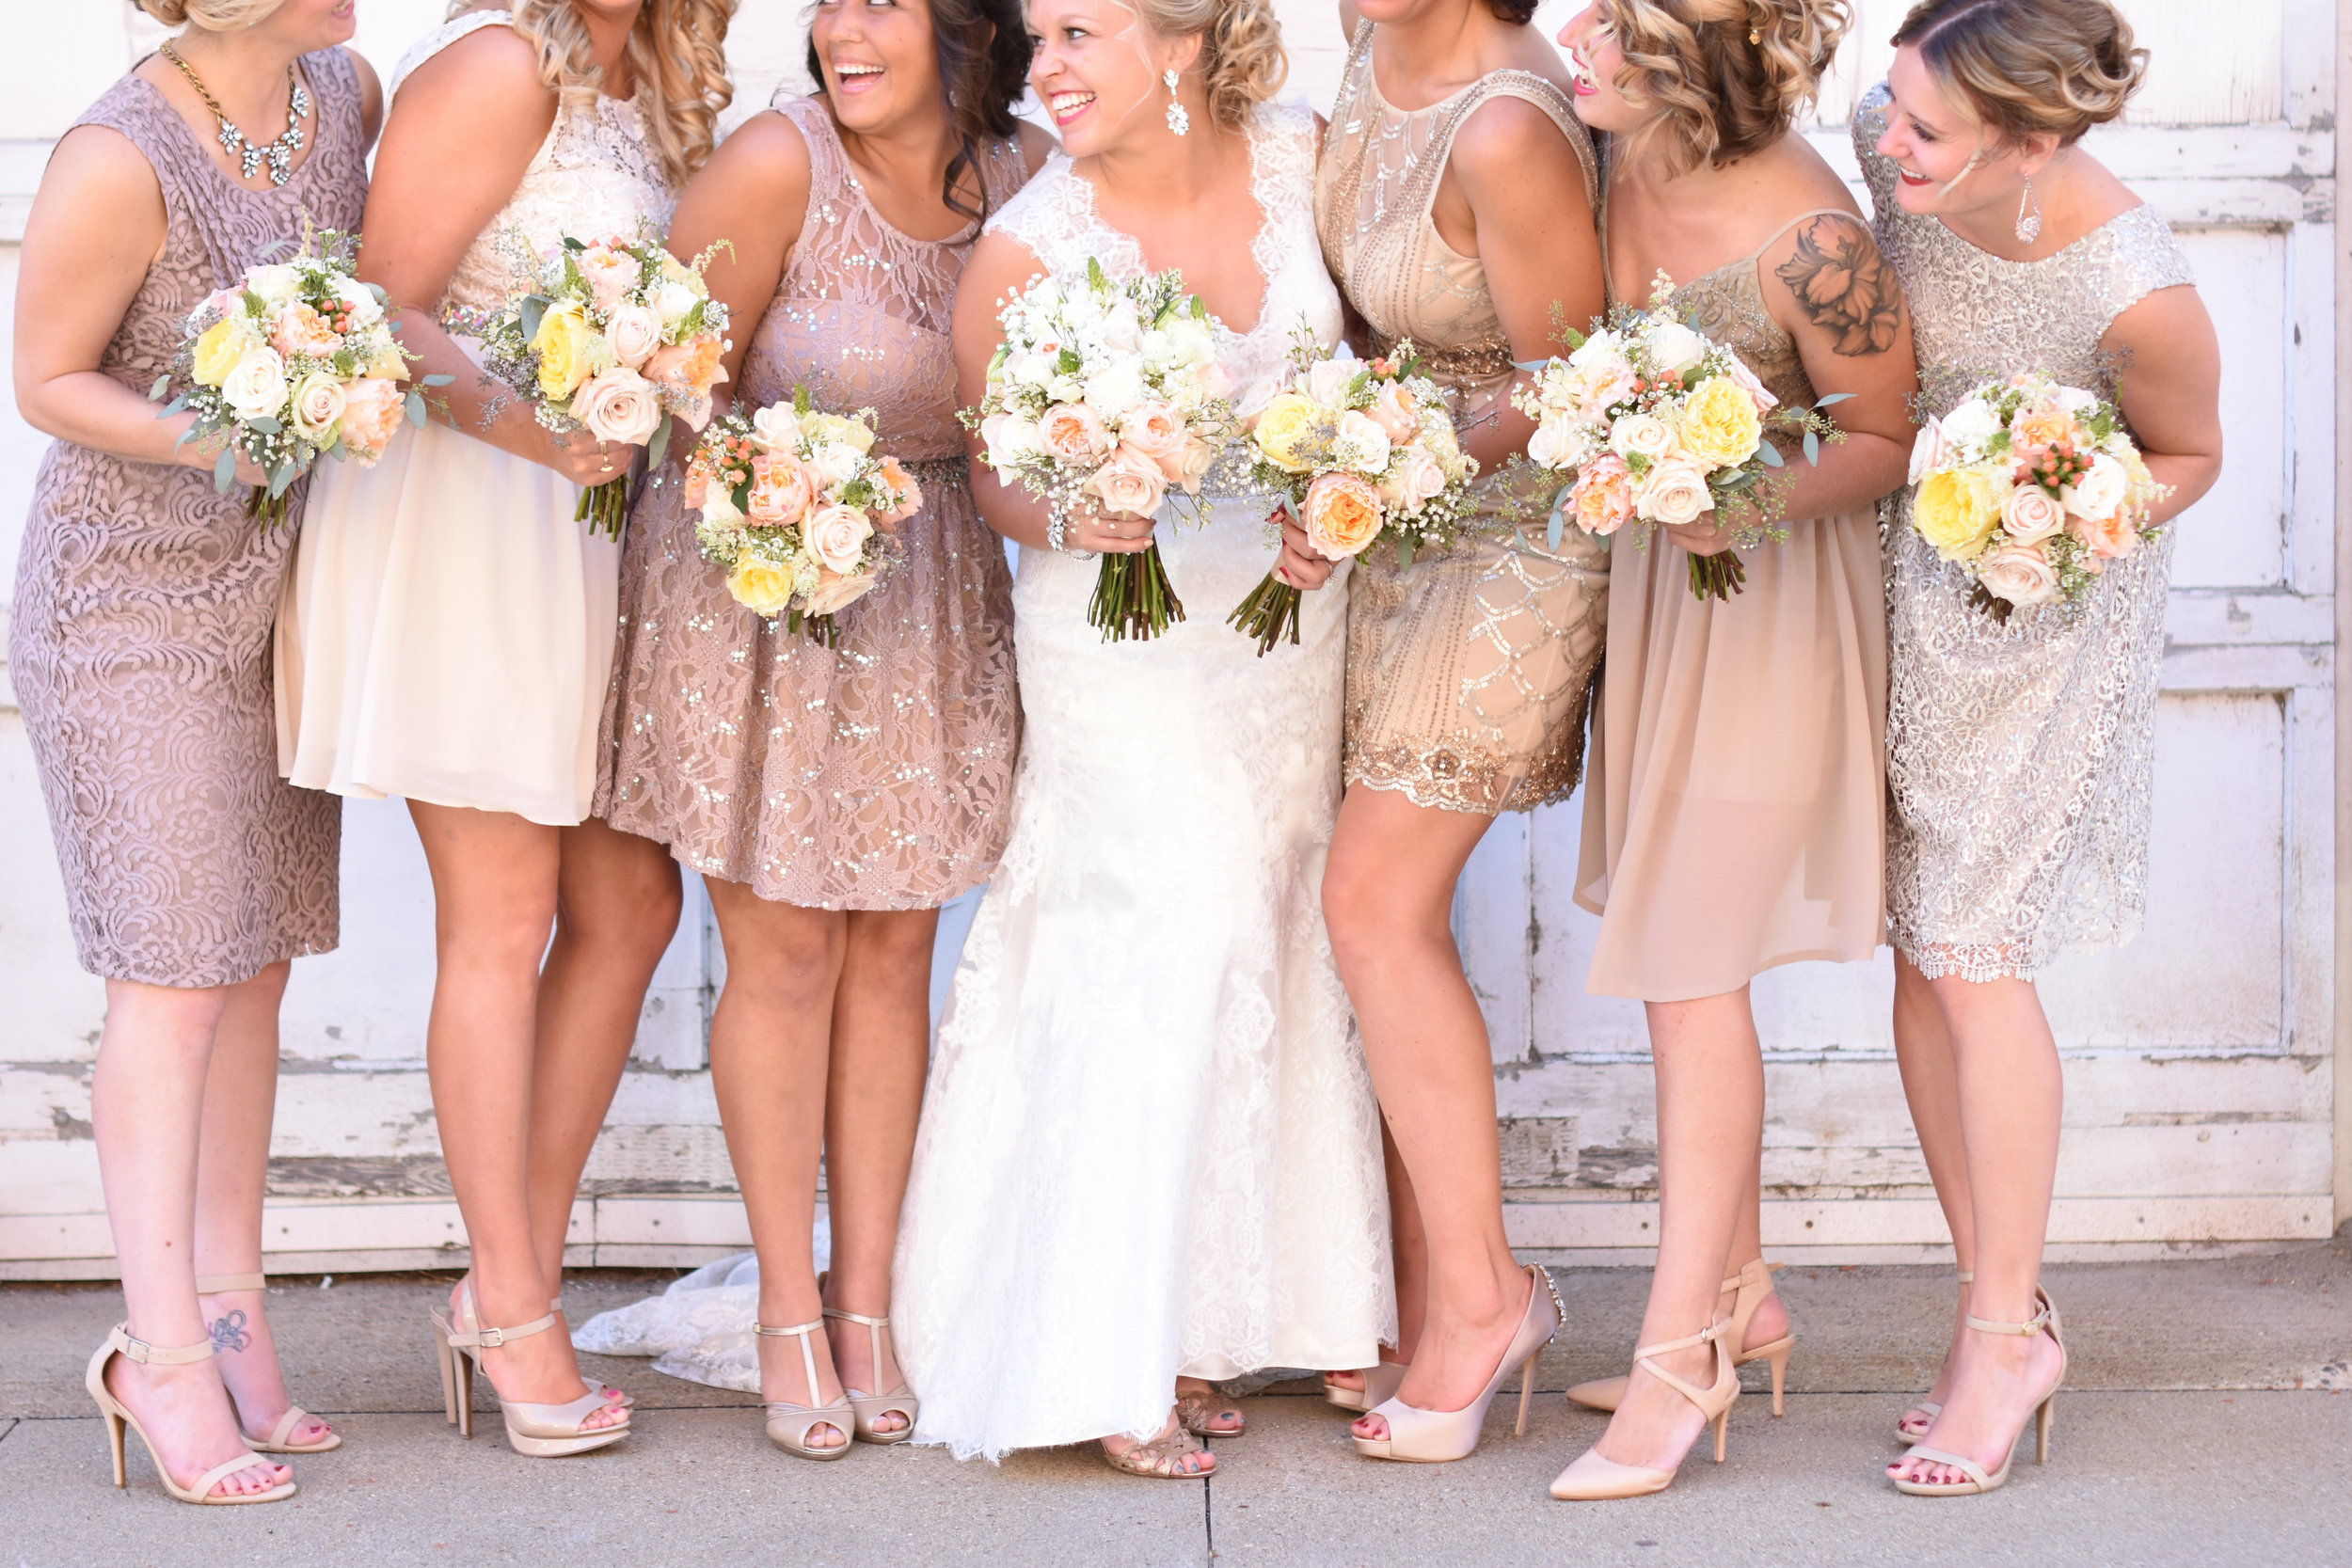 blush tan and copper mix and match bridesmaid dresses // macy marie photography wedding